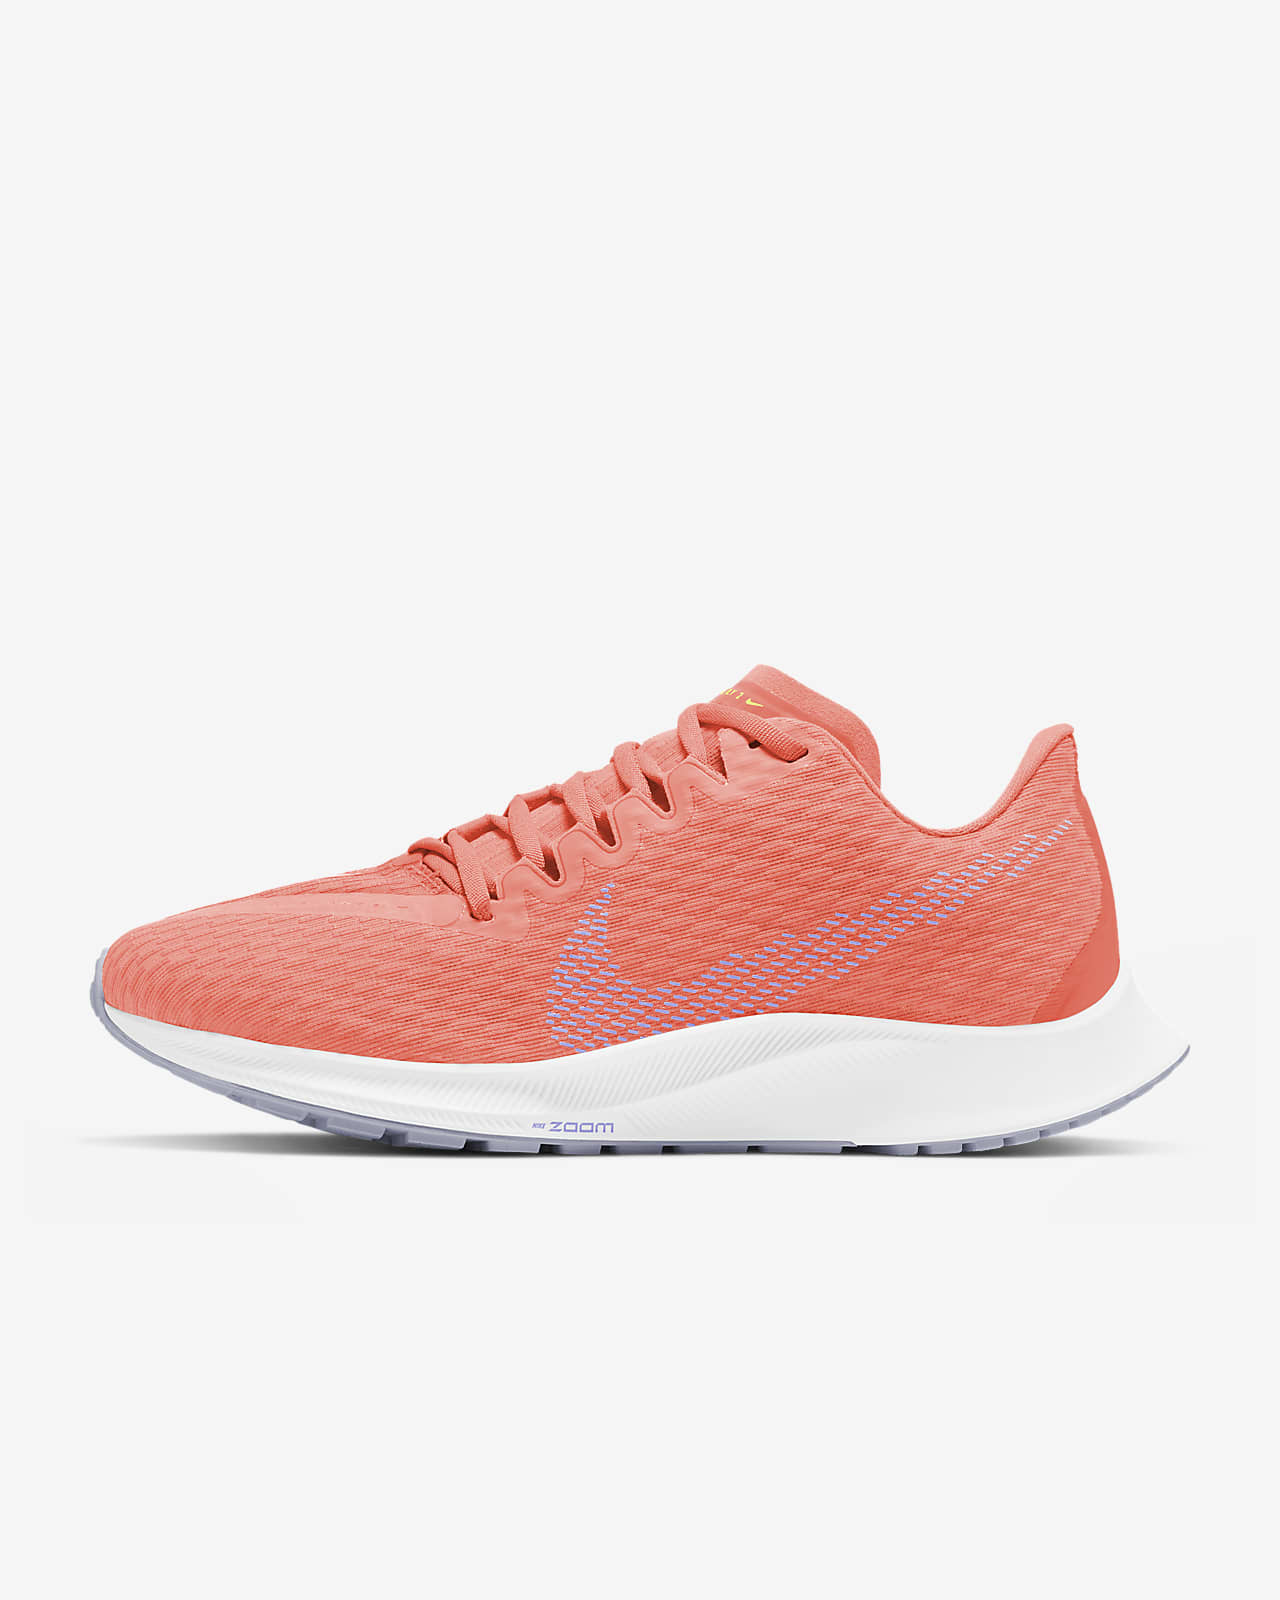 Nike Zoom Rival Fly 2 Women's Road Racing Shoes